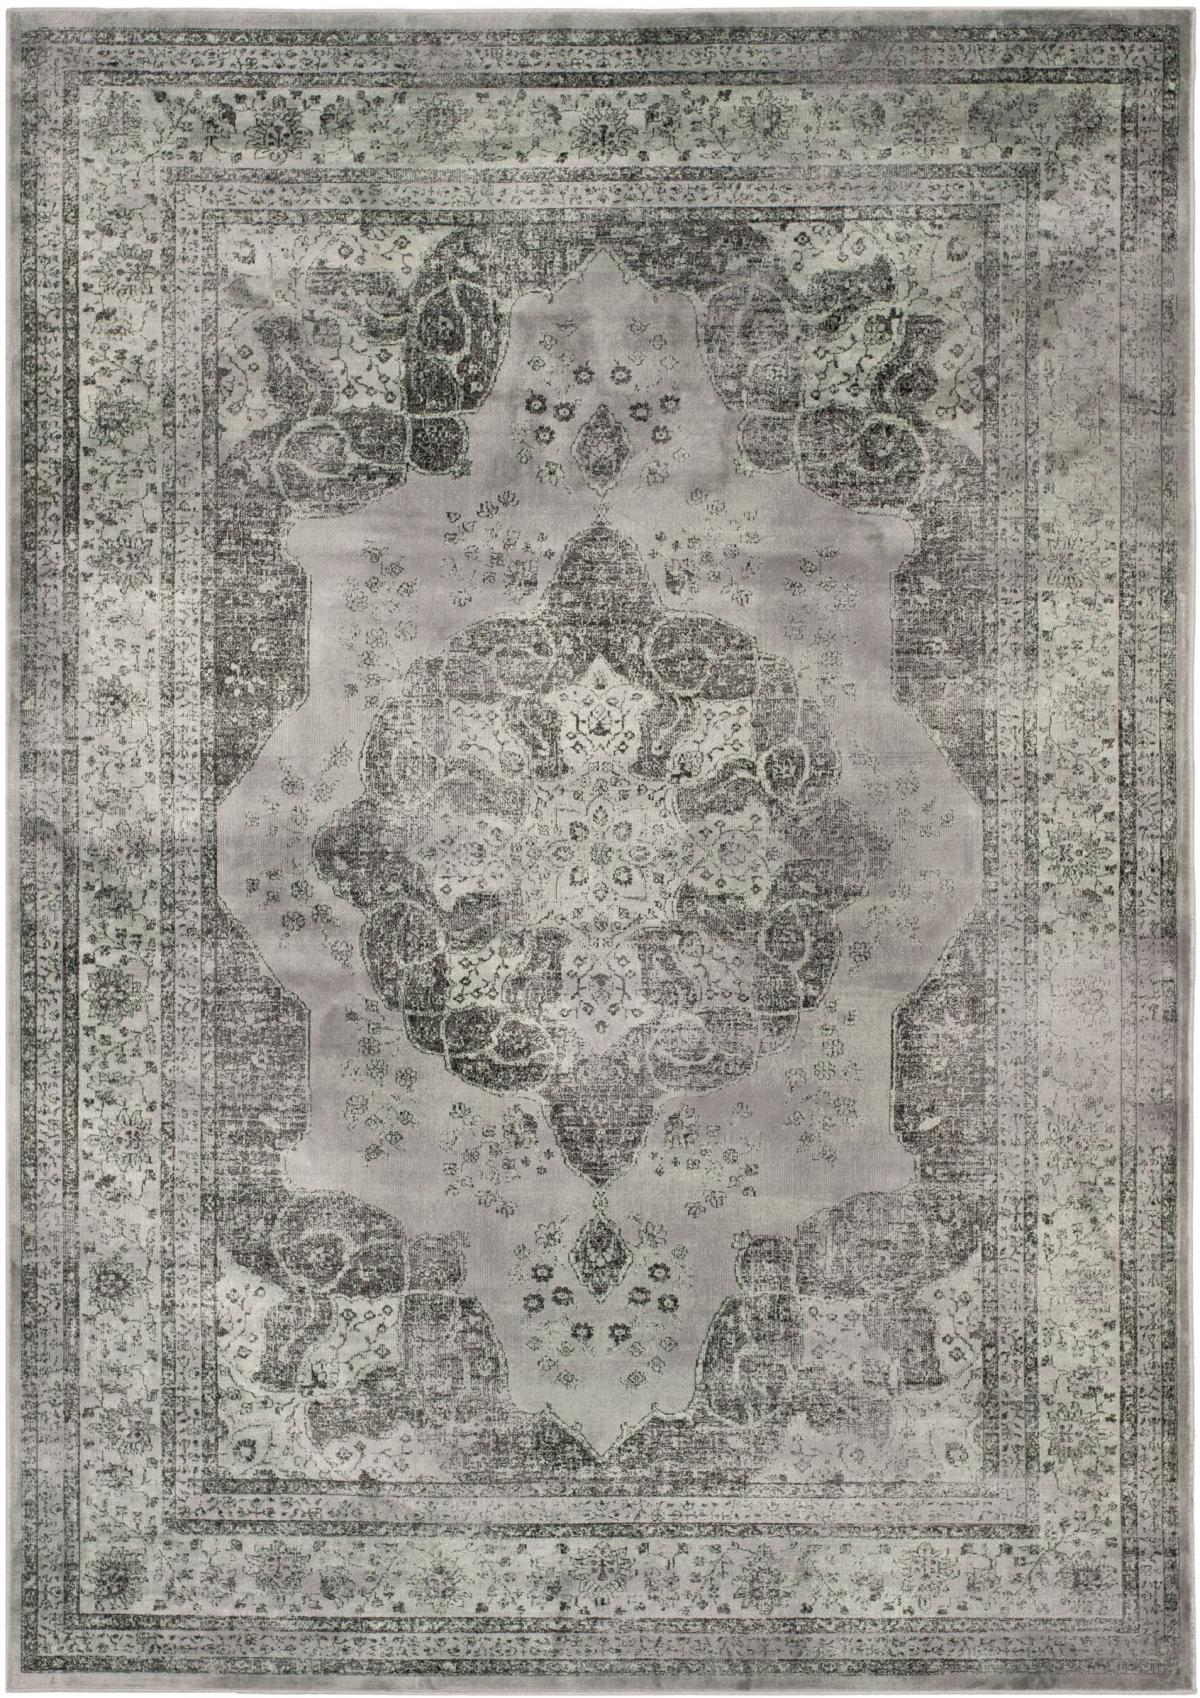 Rug Vtg158 770 Vintage Area Rugs By Safavieh